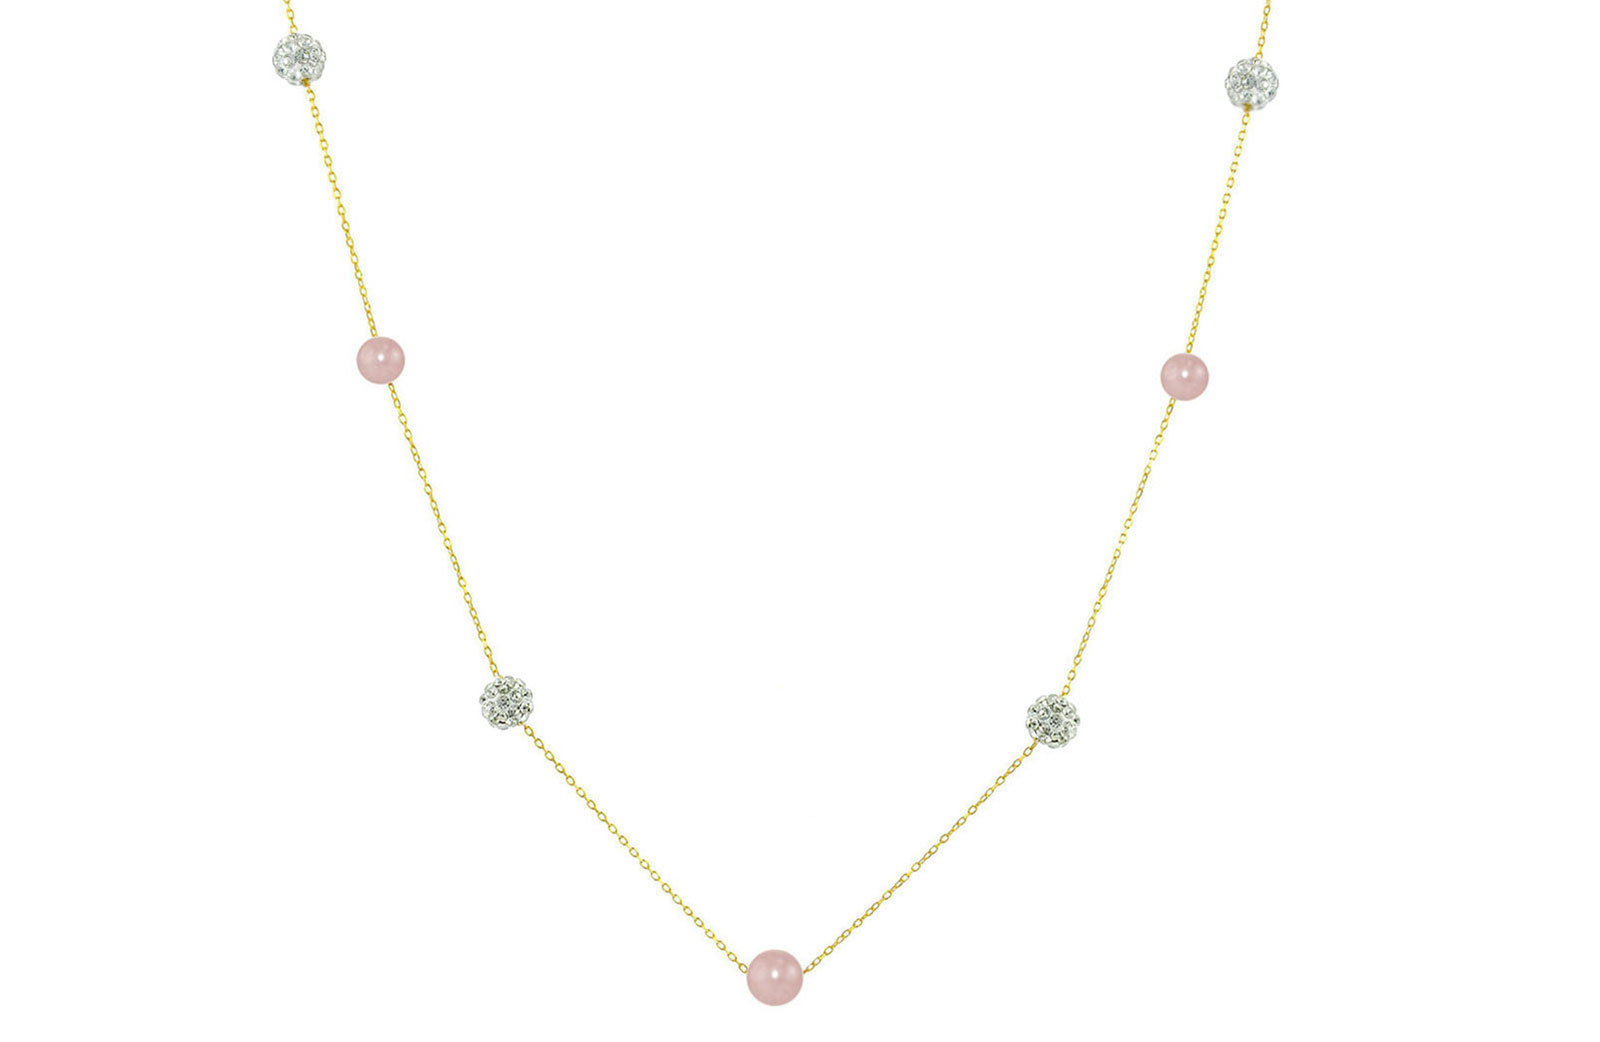 Vera Perla 18K Solid Gold Gradual Built-in 5-6mm Purple Pearls and Crystal Ball Necklace